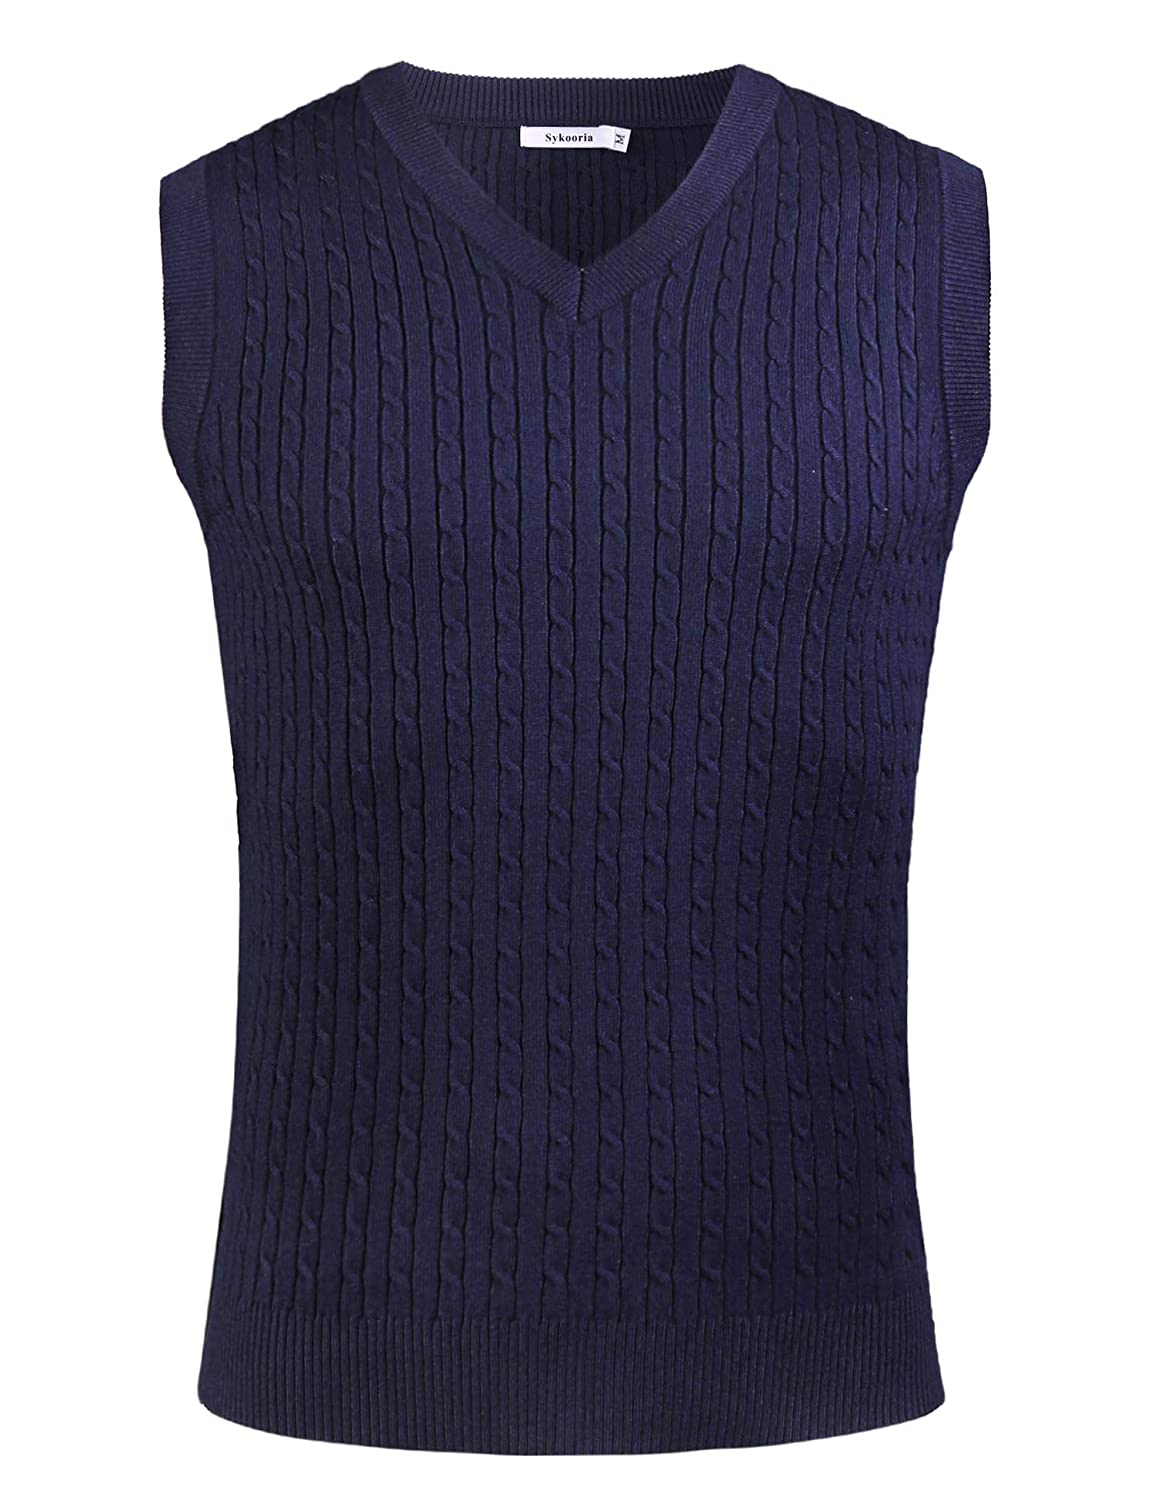 Sykooria Mens Gilets V Neck Sleeveless Vest Sweater Cotton Casual Chunky Winter Knitted Ribbed Tanks Tops Winter